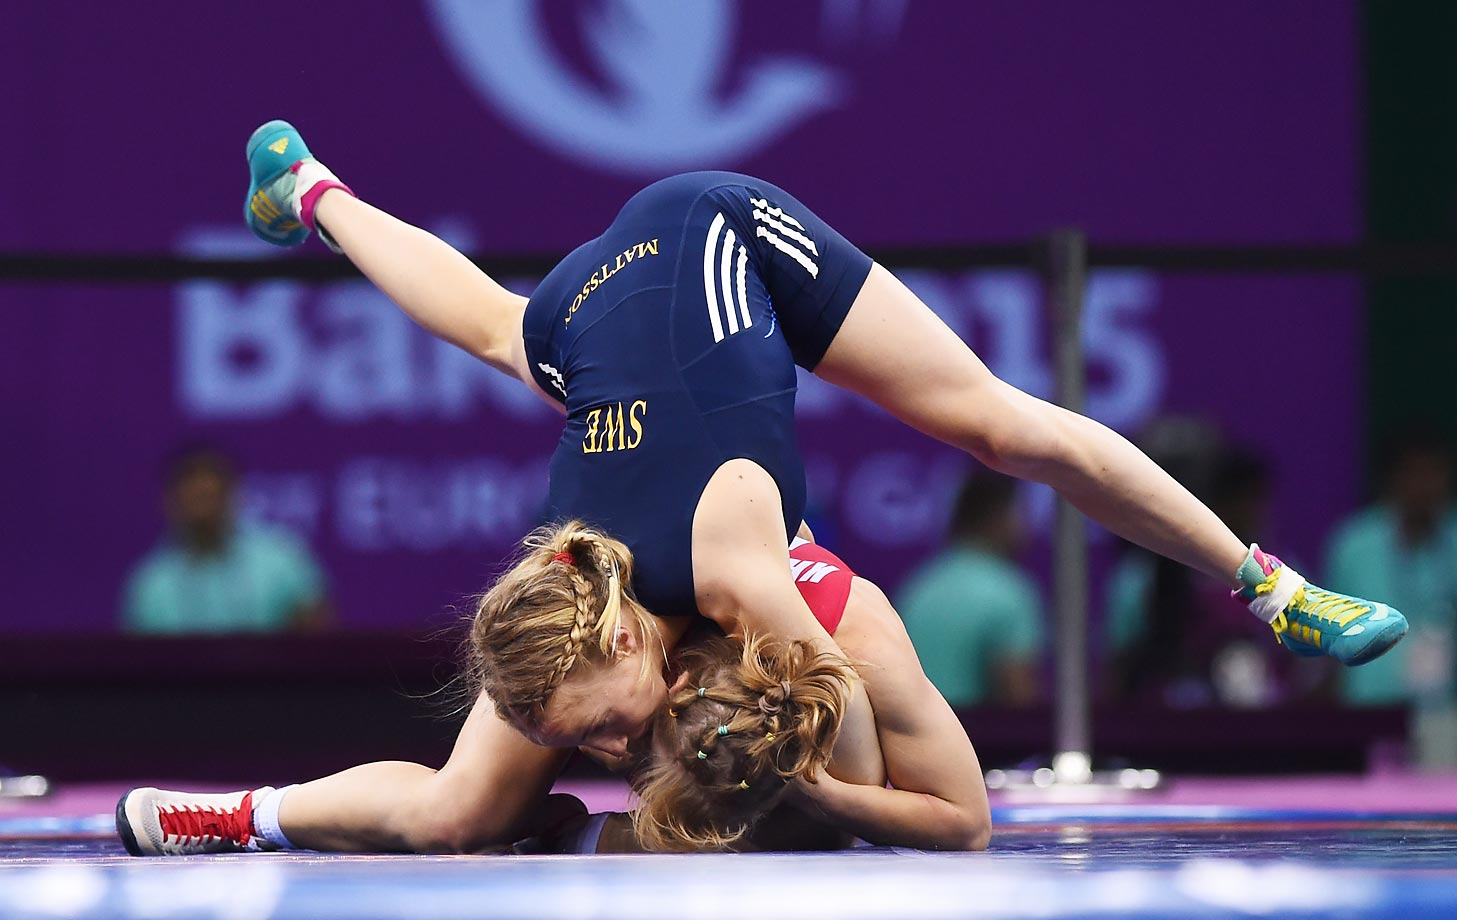 Sofia Mattsson of Sweden (blue) and Katarzyna Krawczyk of Poland compete in the 55kg Freestyle Wrestling final at the Baku 2015 European Games.